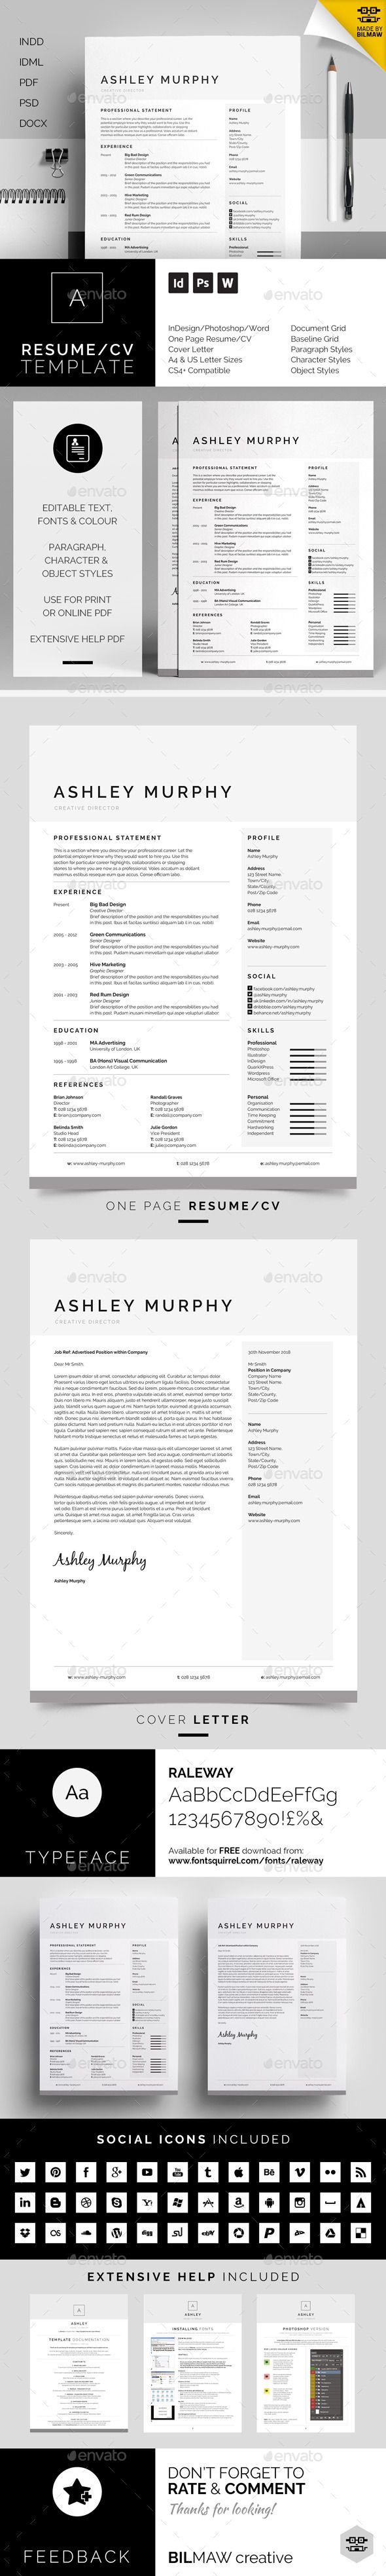 letter format for application%0A Resume CV  Ashley